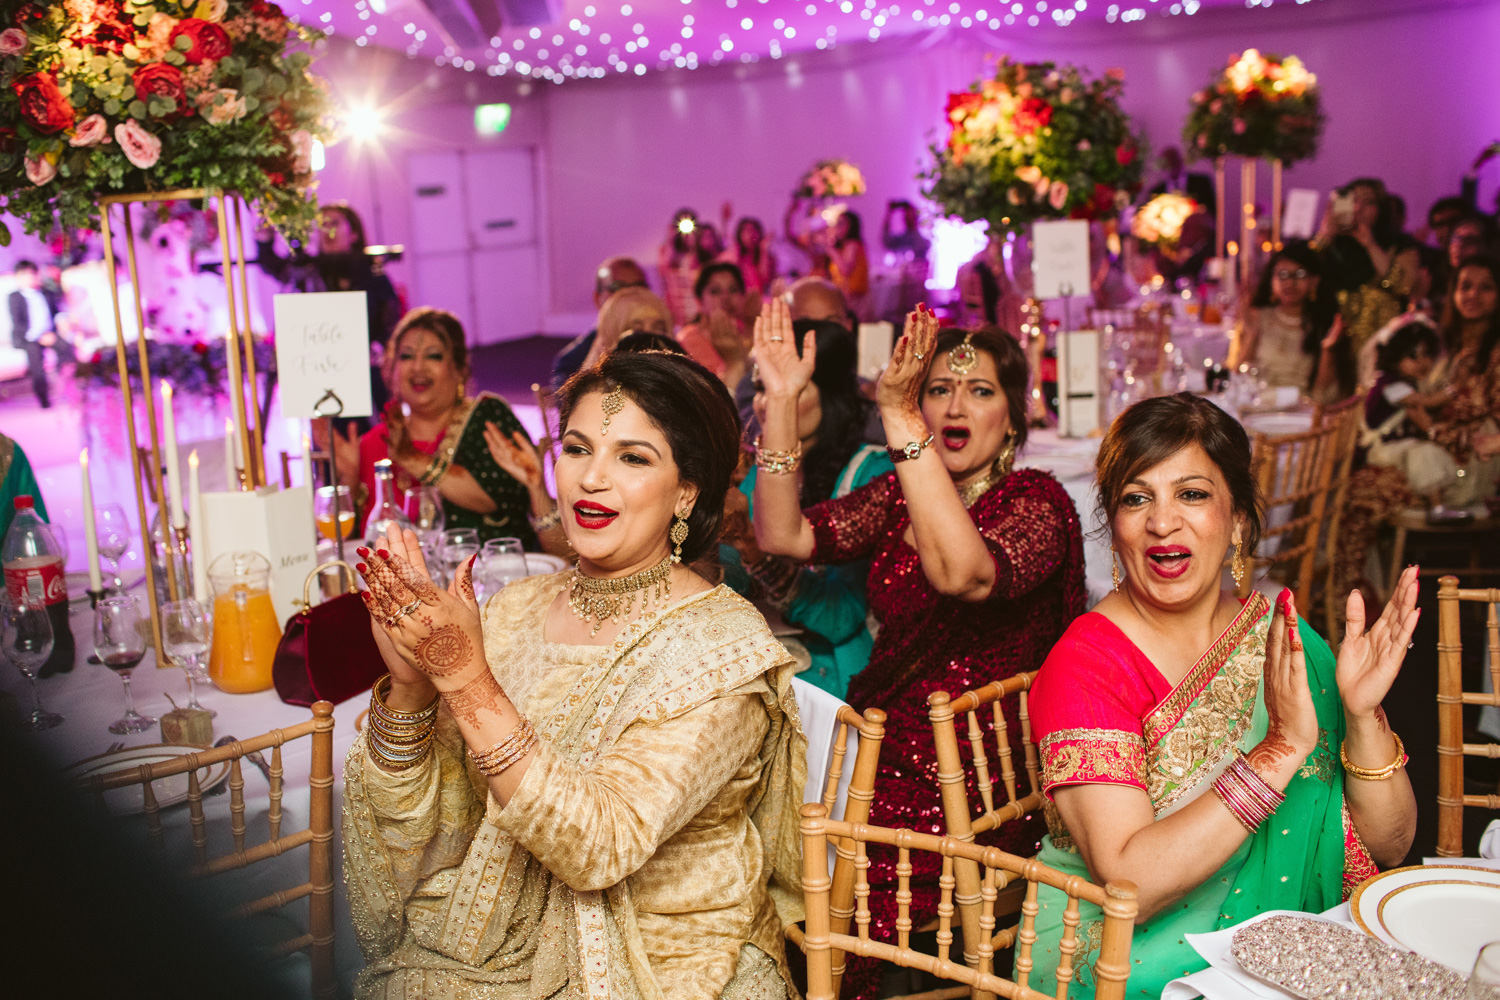 Photography of some guests at an Asian Wedding in London